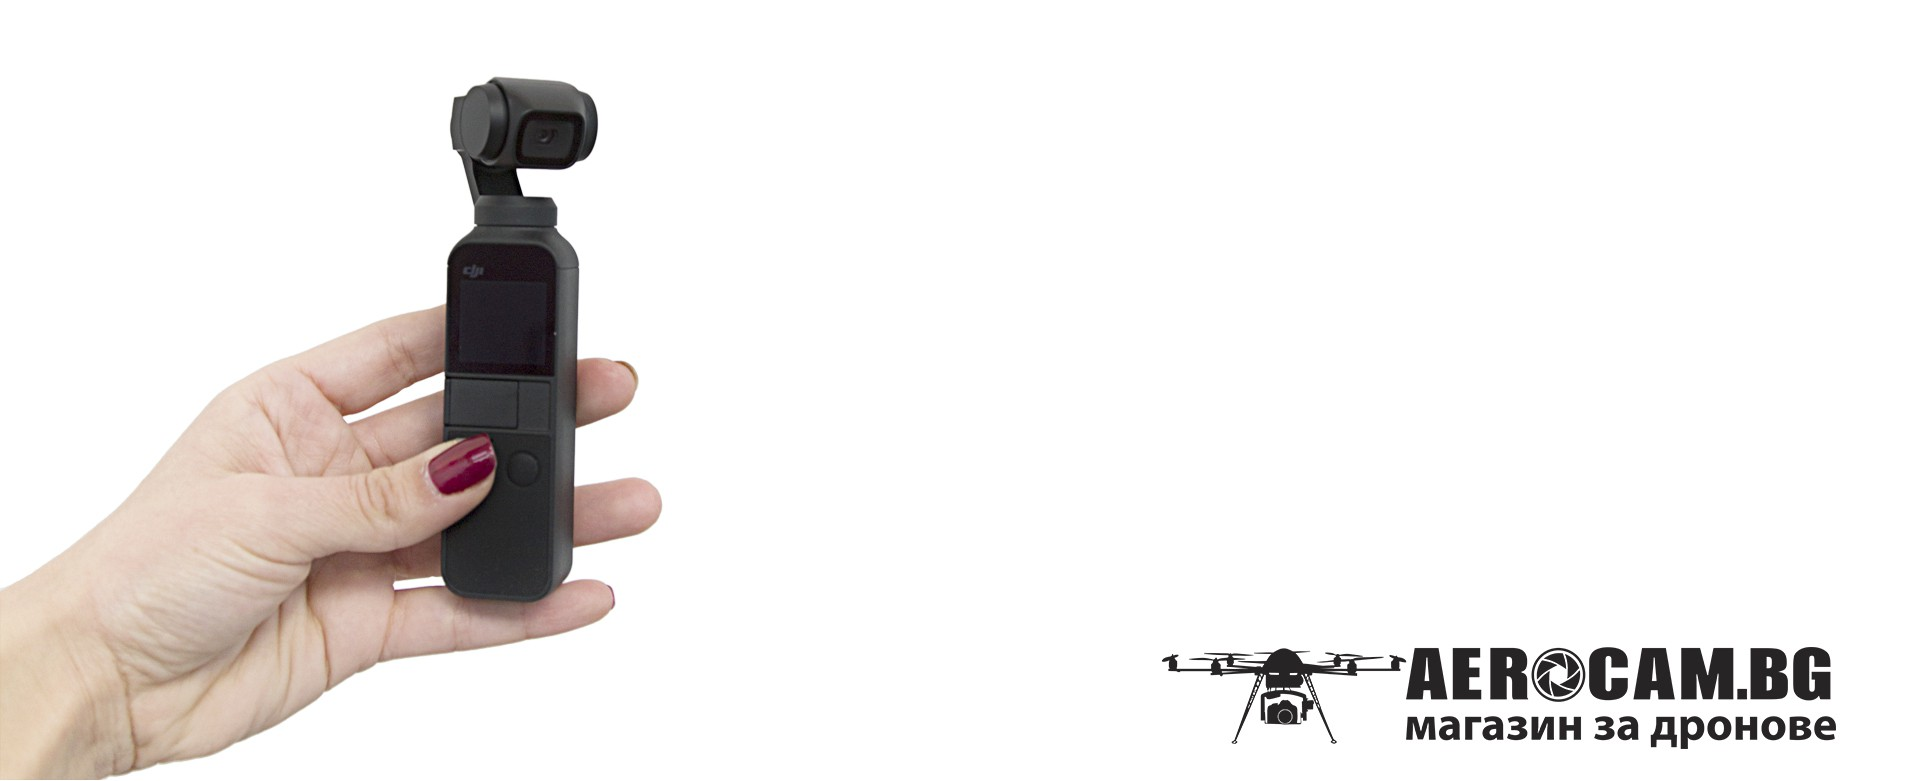 DJI Osmo Pocket by AeroCam.bg